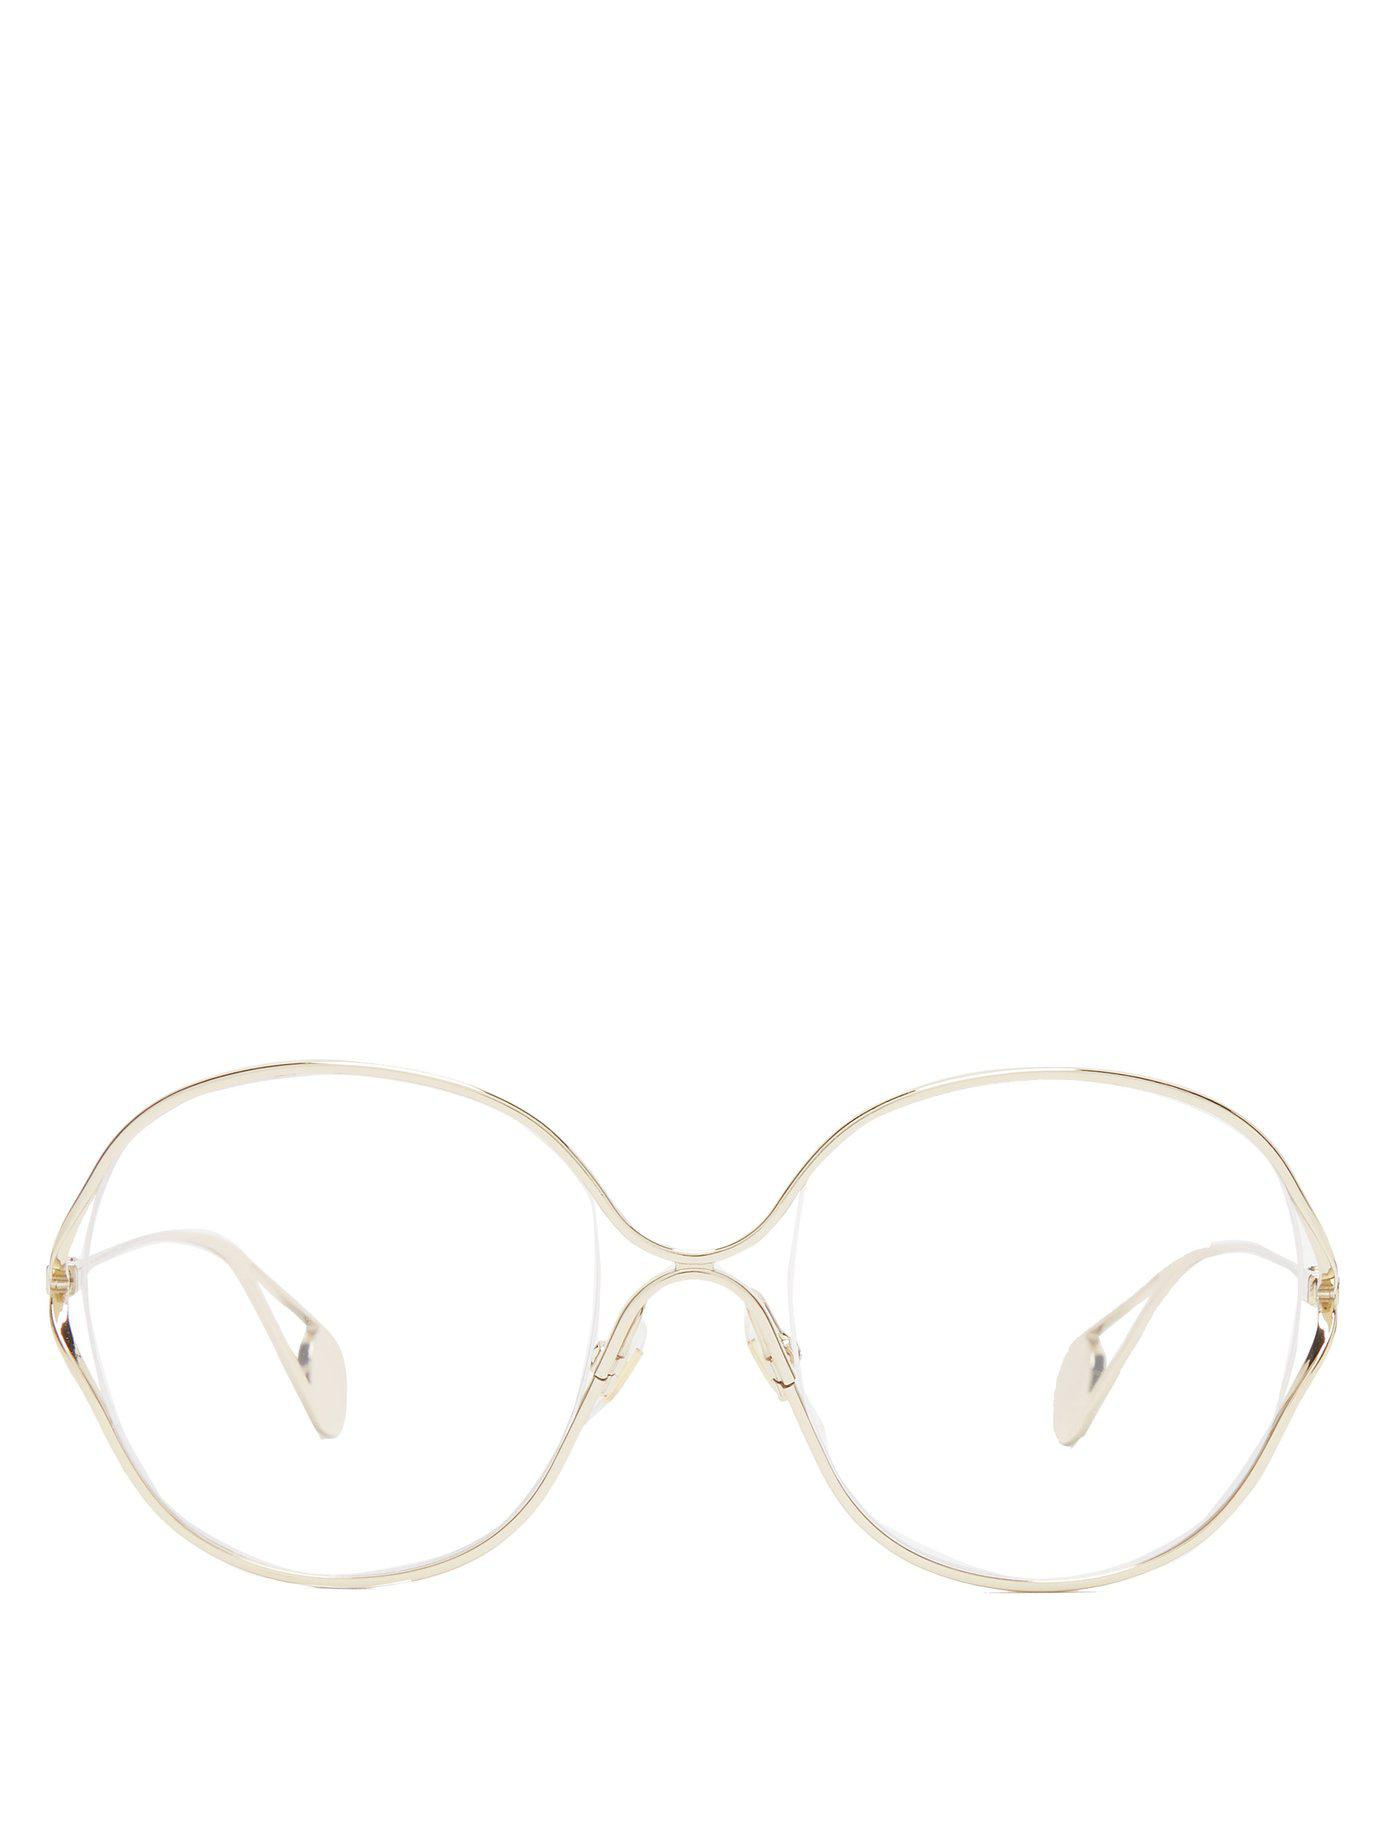 0348d2debf Gucci Round Frame Metal And Faux Pearl Glasses in Metallic - Lyst